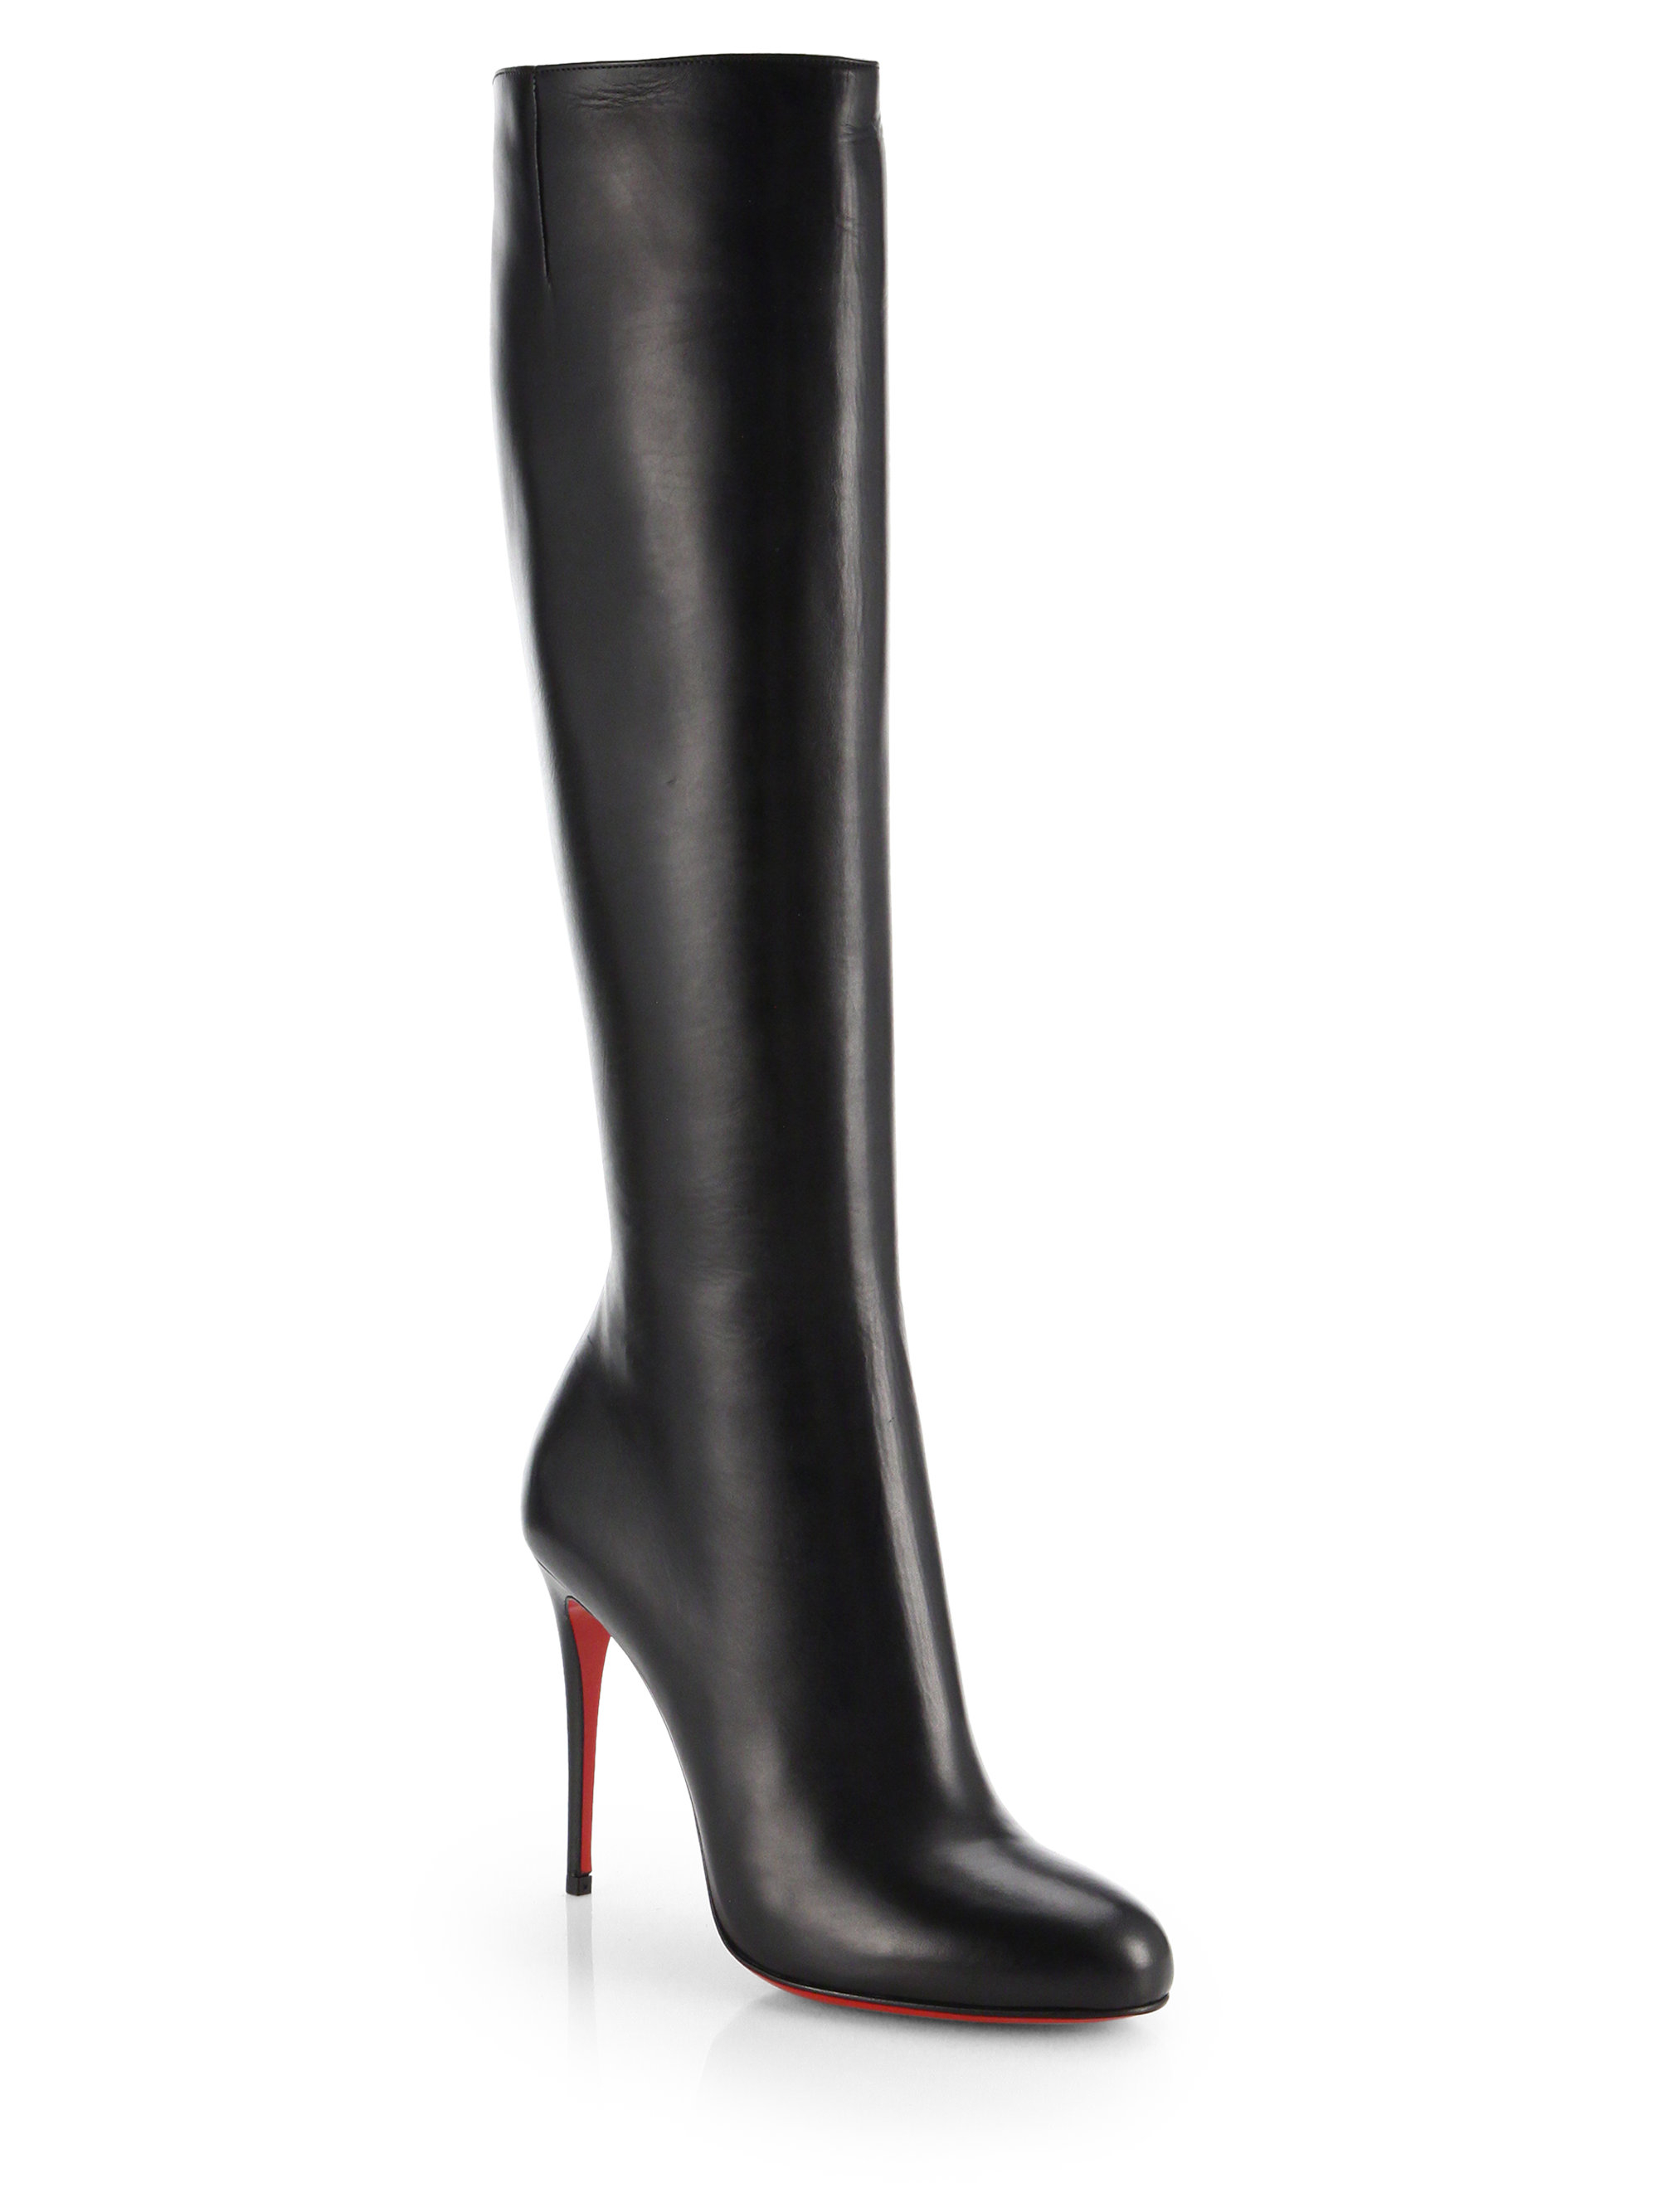 8ff324800d1c7e Lyst - Christian Louboutin Fifi Botta Suede Knee-high Boots in Black